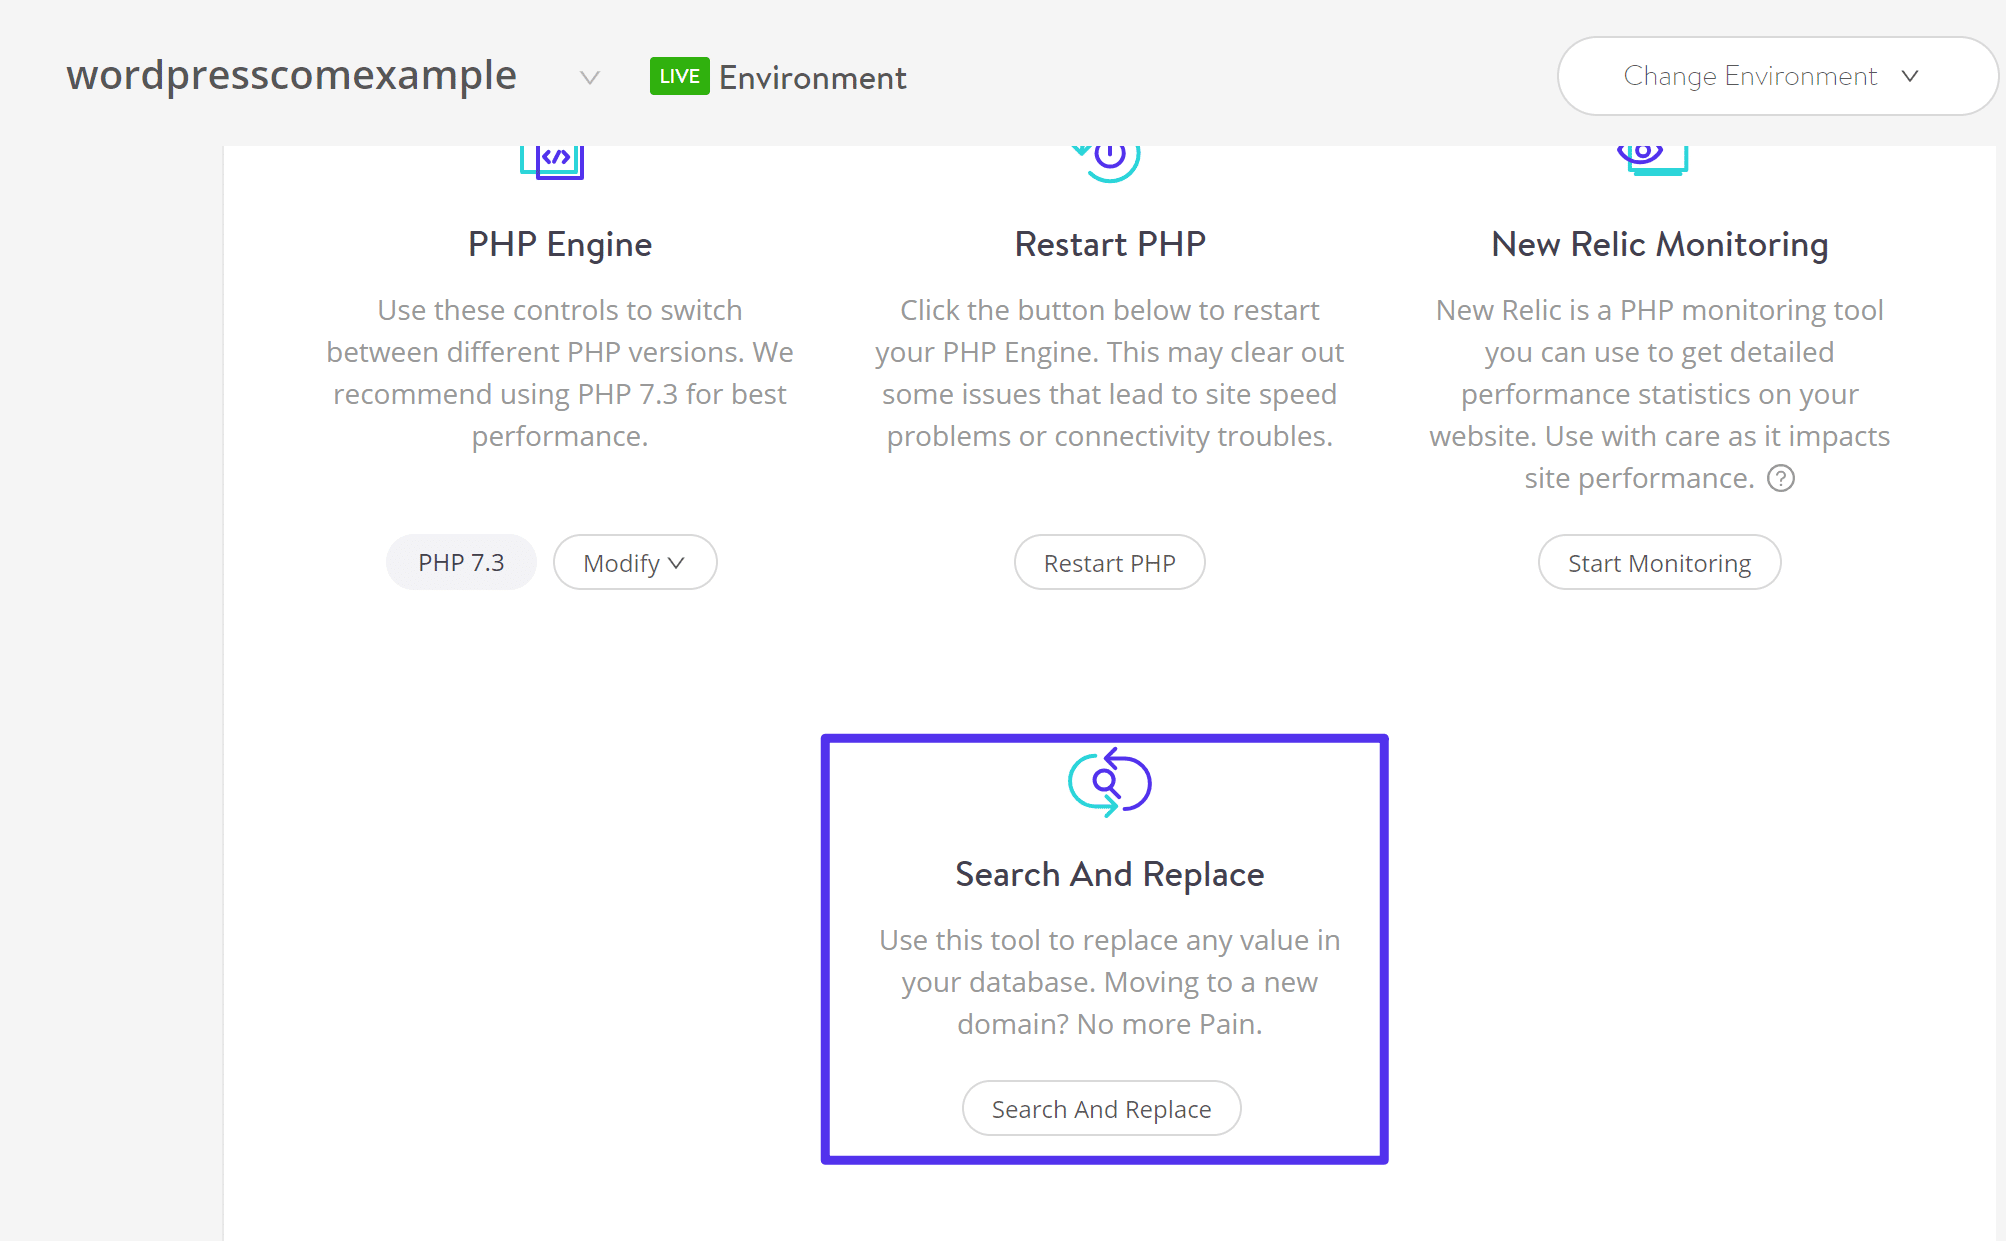 Kinsta Search And Replace tool